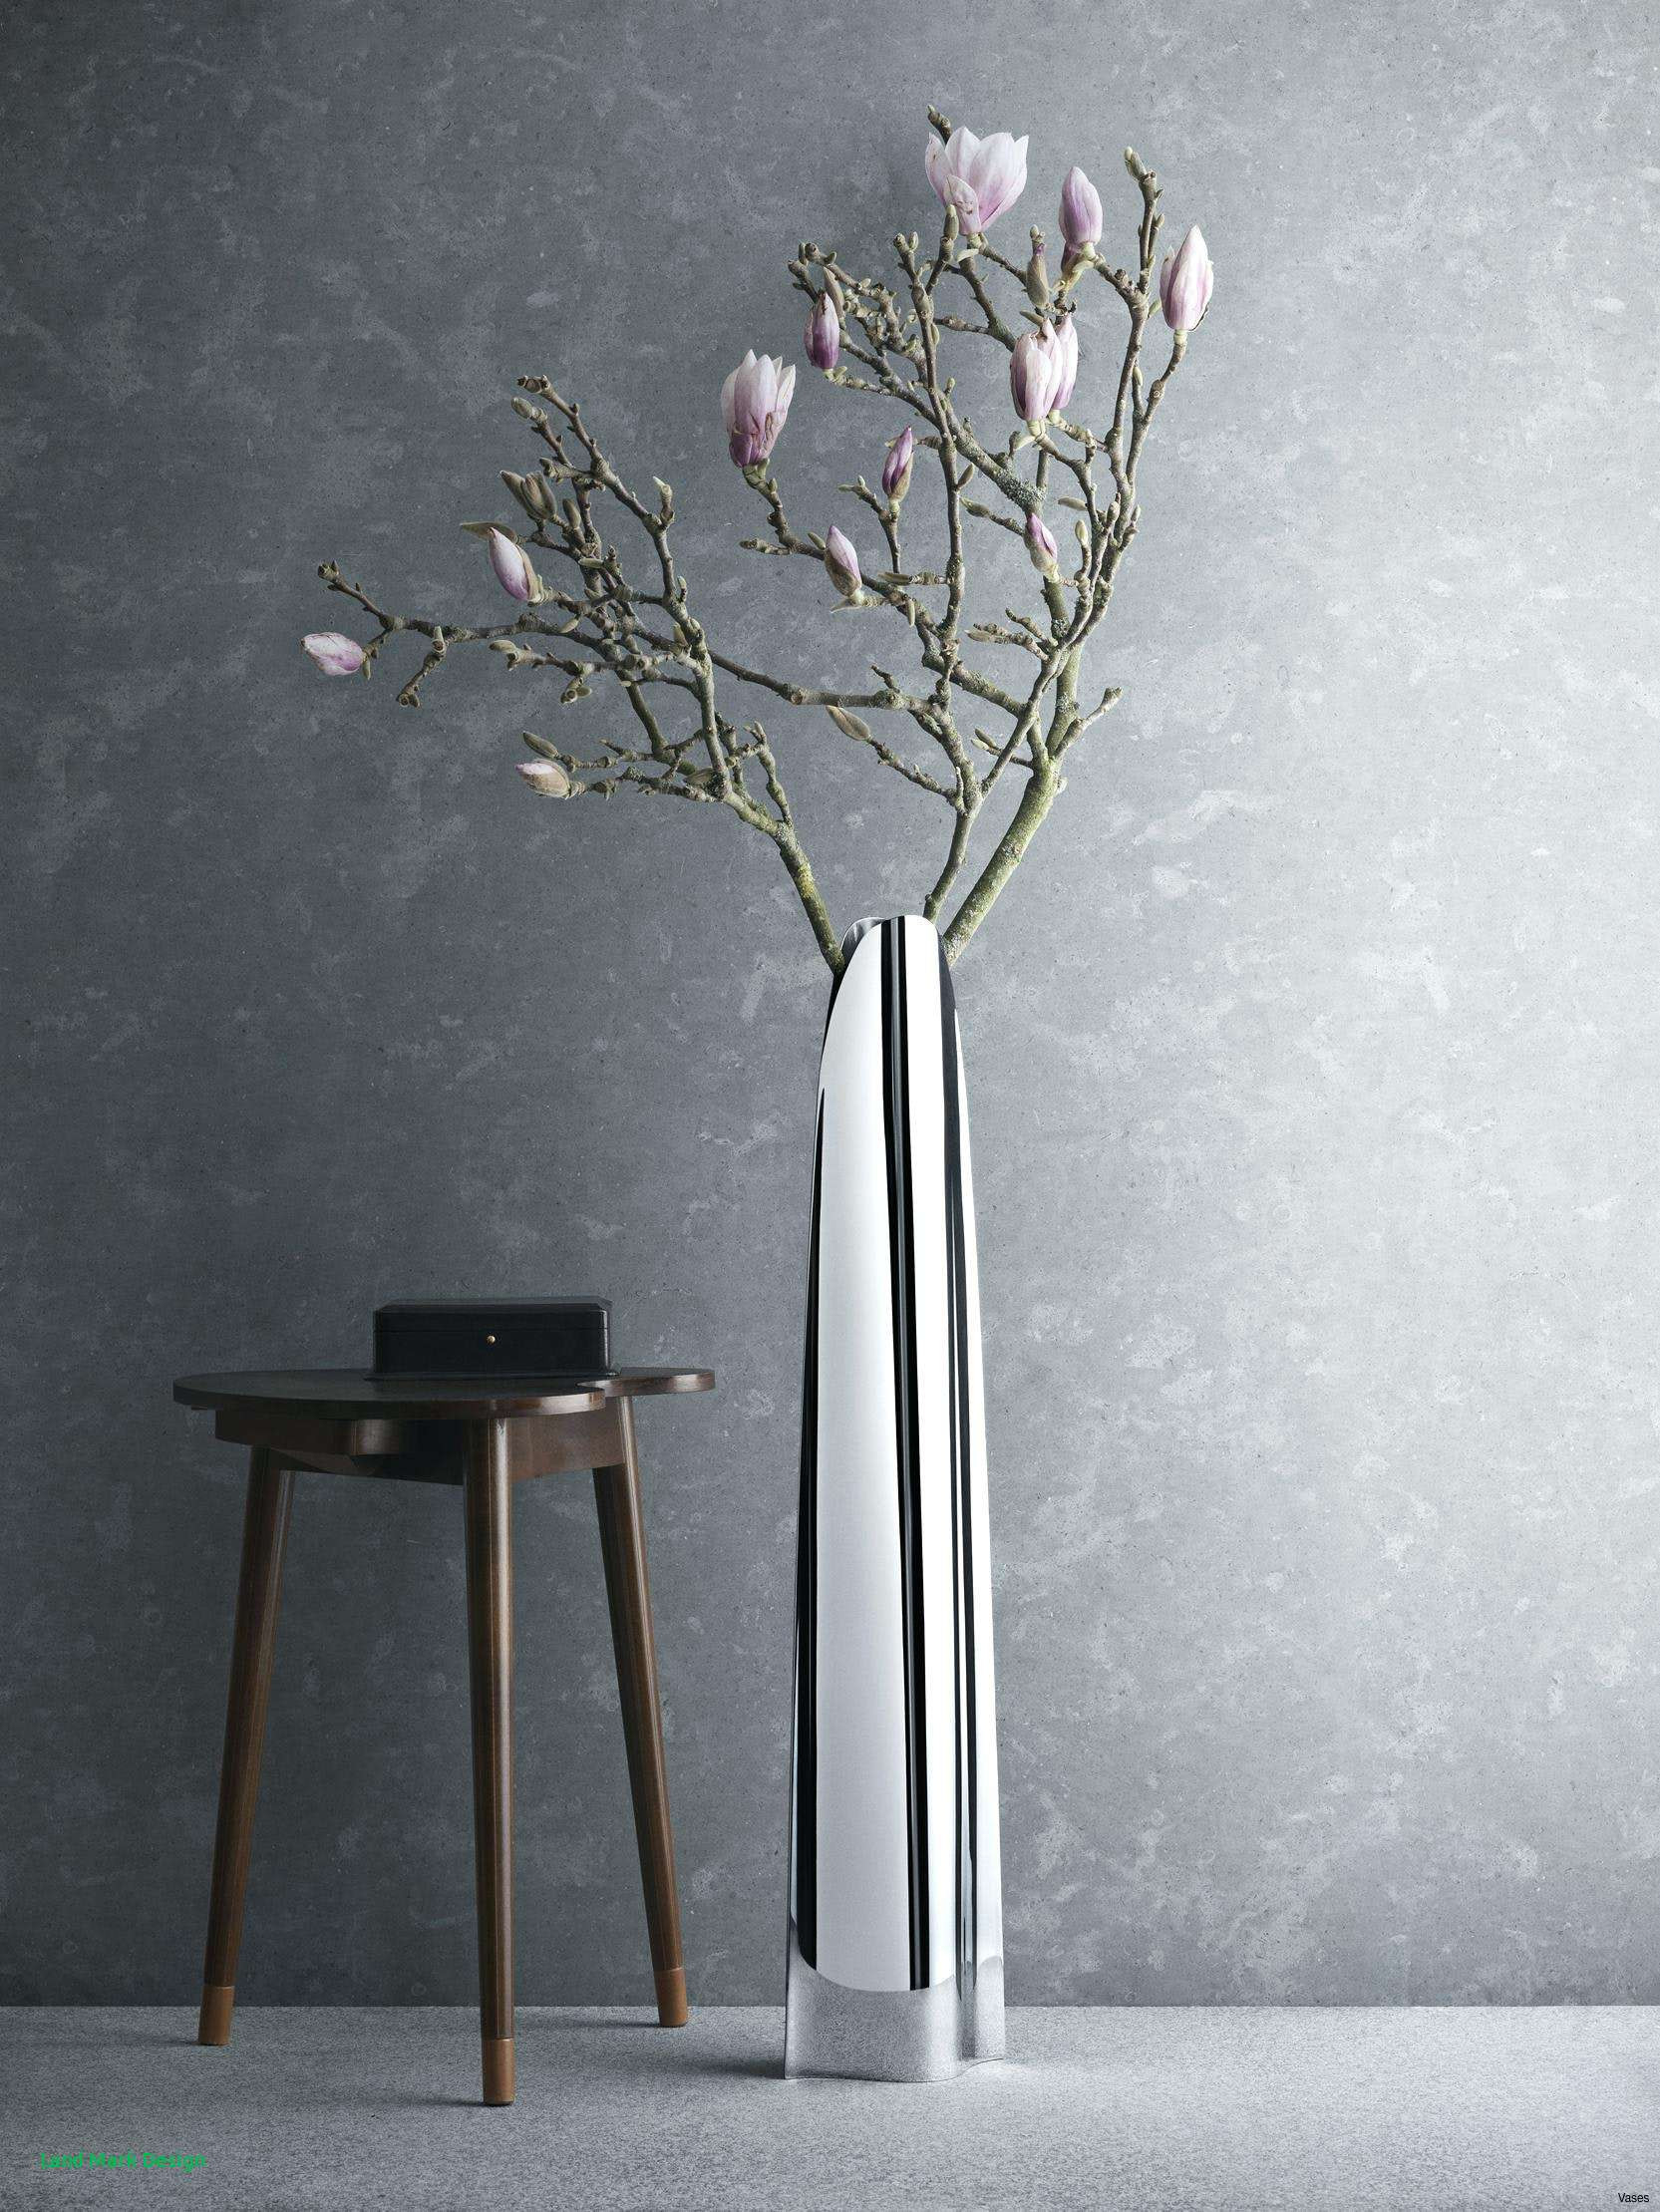 3 Foot Tall Vases Of Modern Tall Vases Photograph 14 Awesome Decorative Vase Designs for for Gallery Of Modern Tall Vases